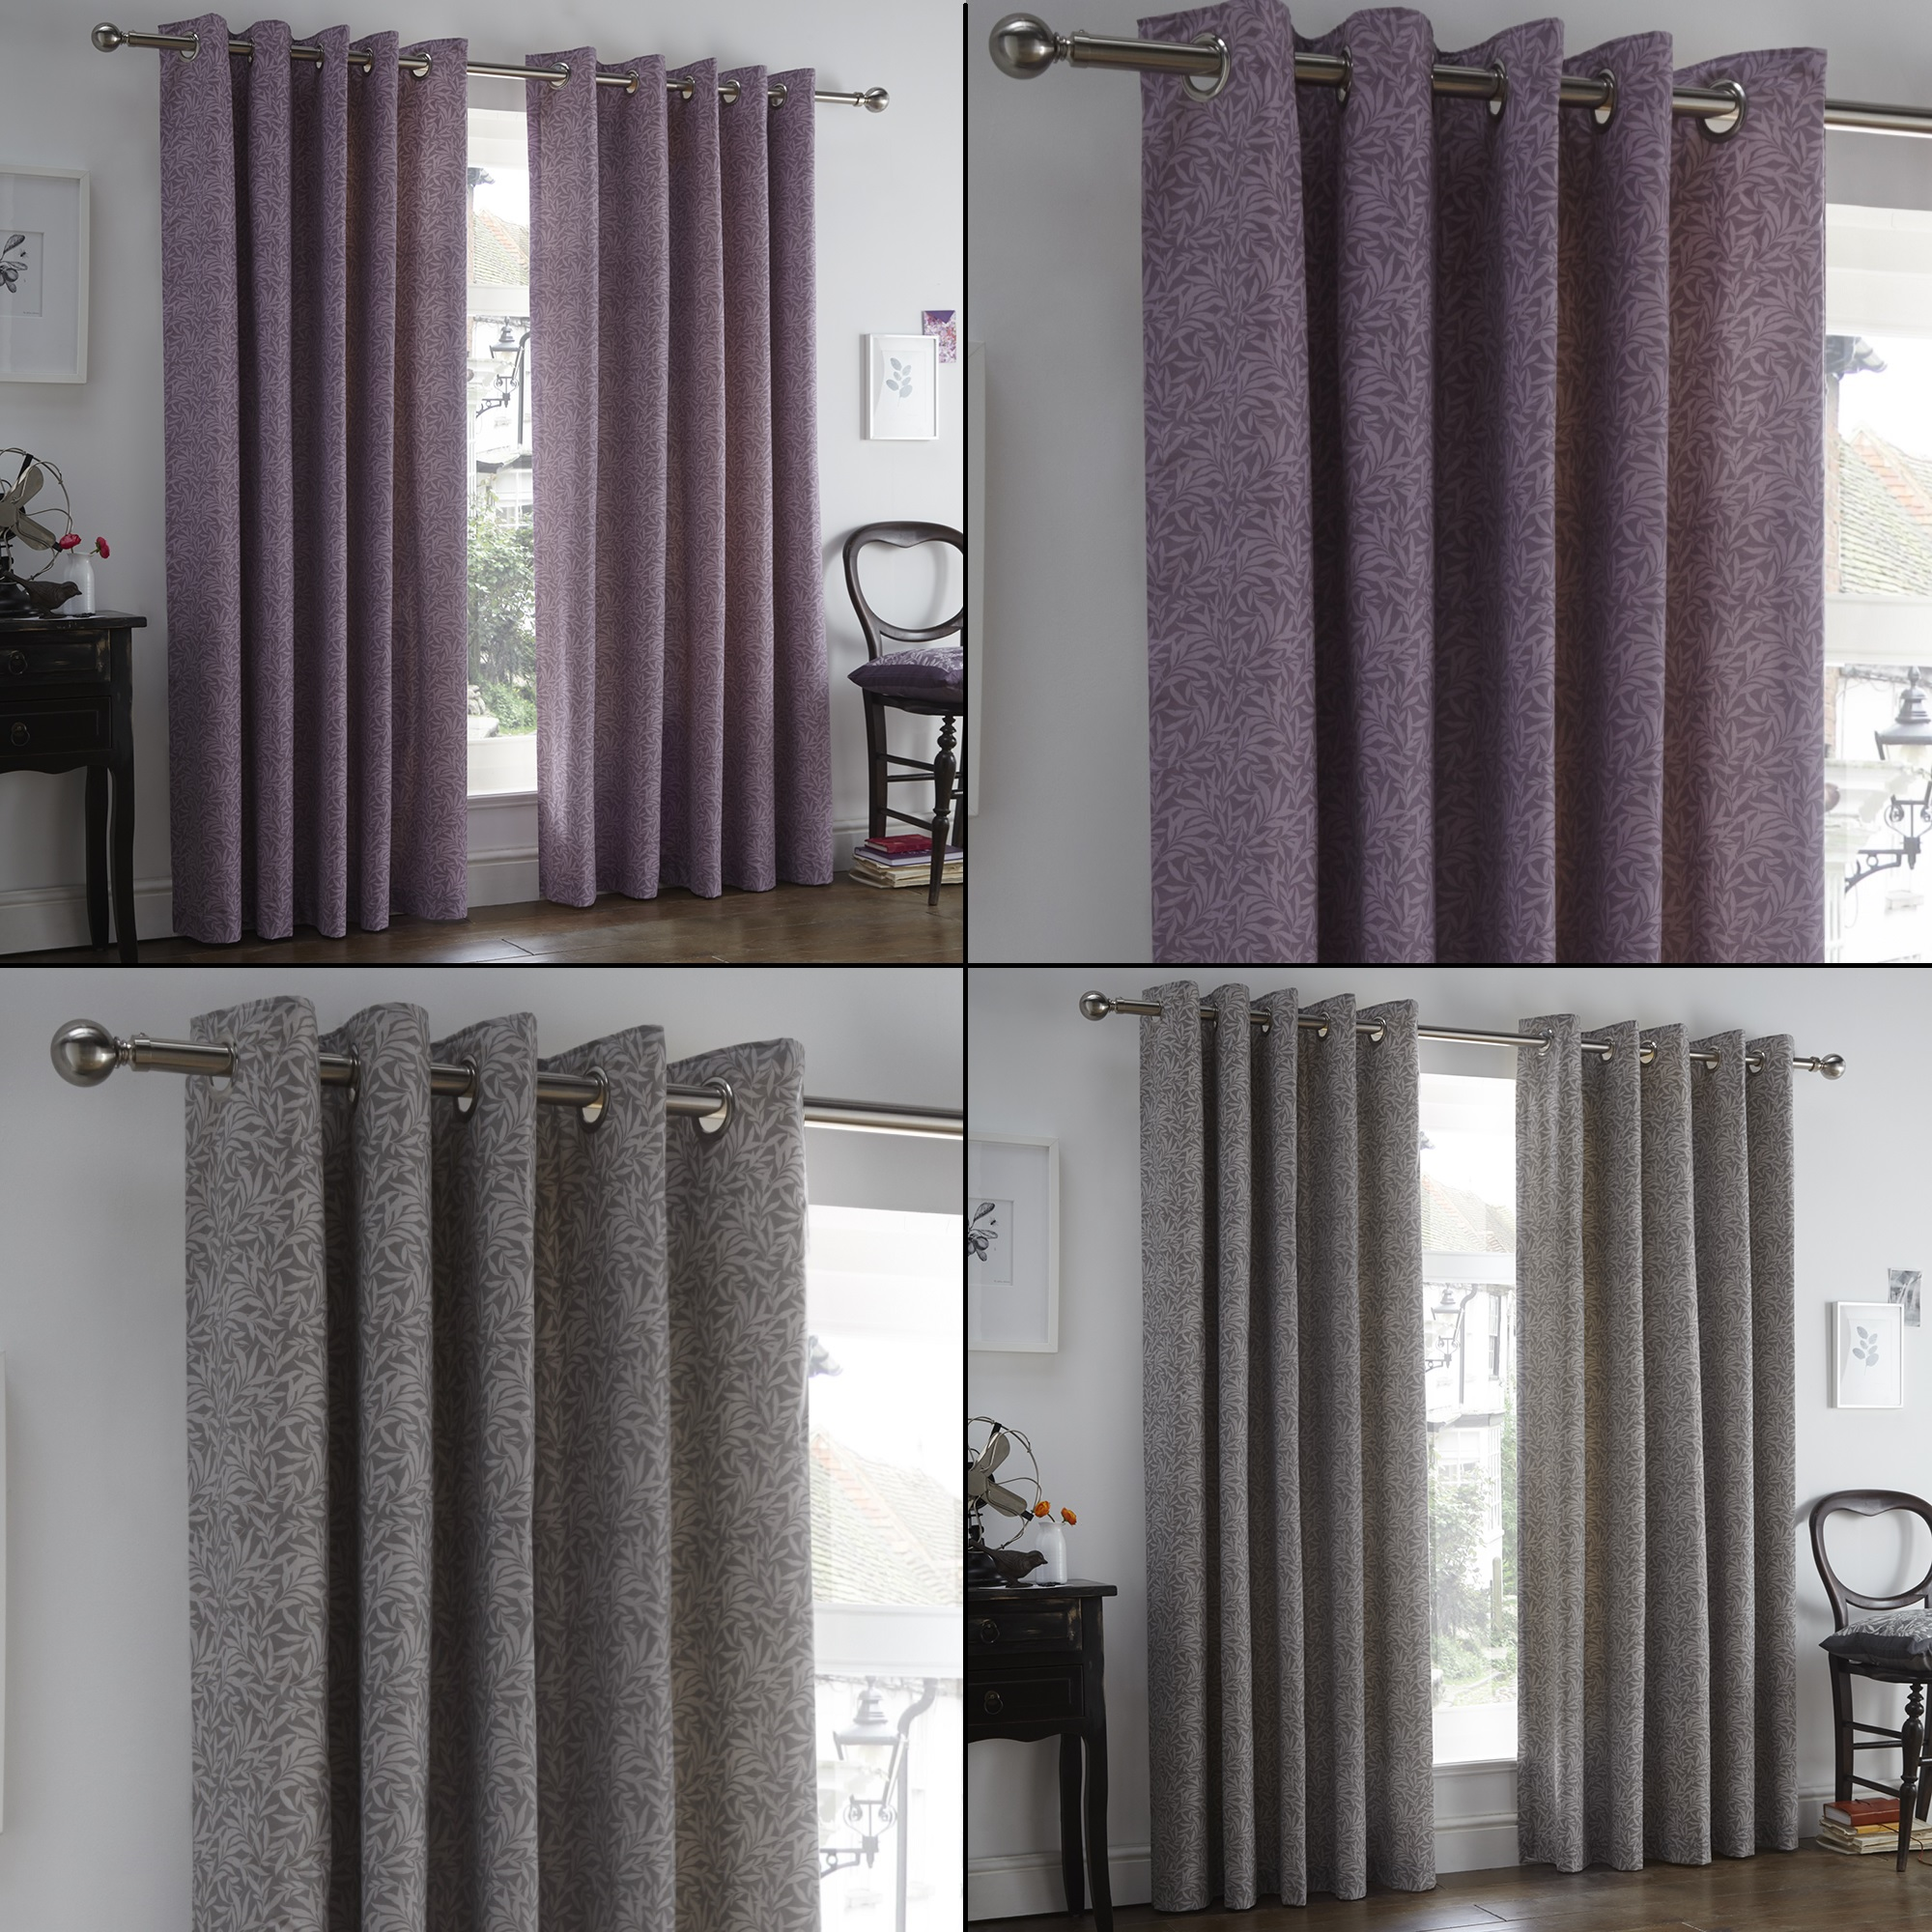 Sentinel Hanworth Floral Eyelet Curtains With Thermal Lining